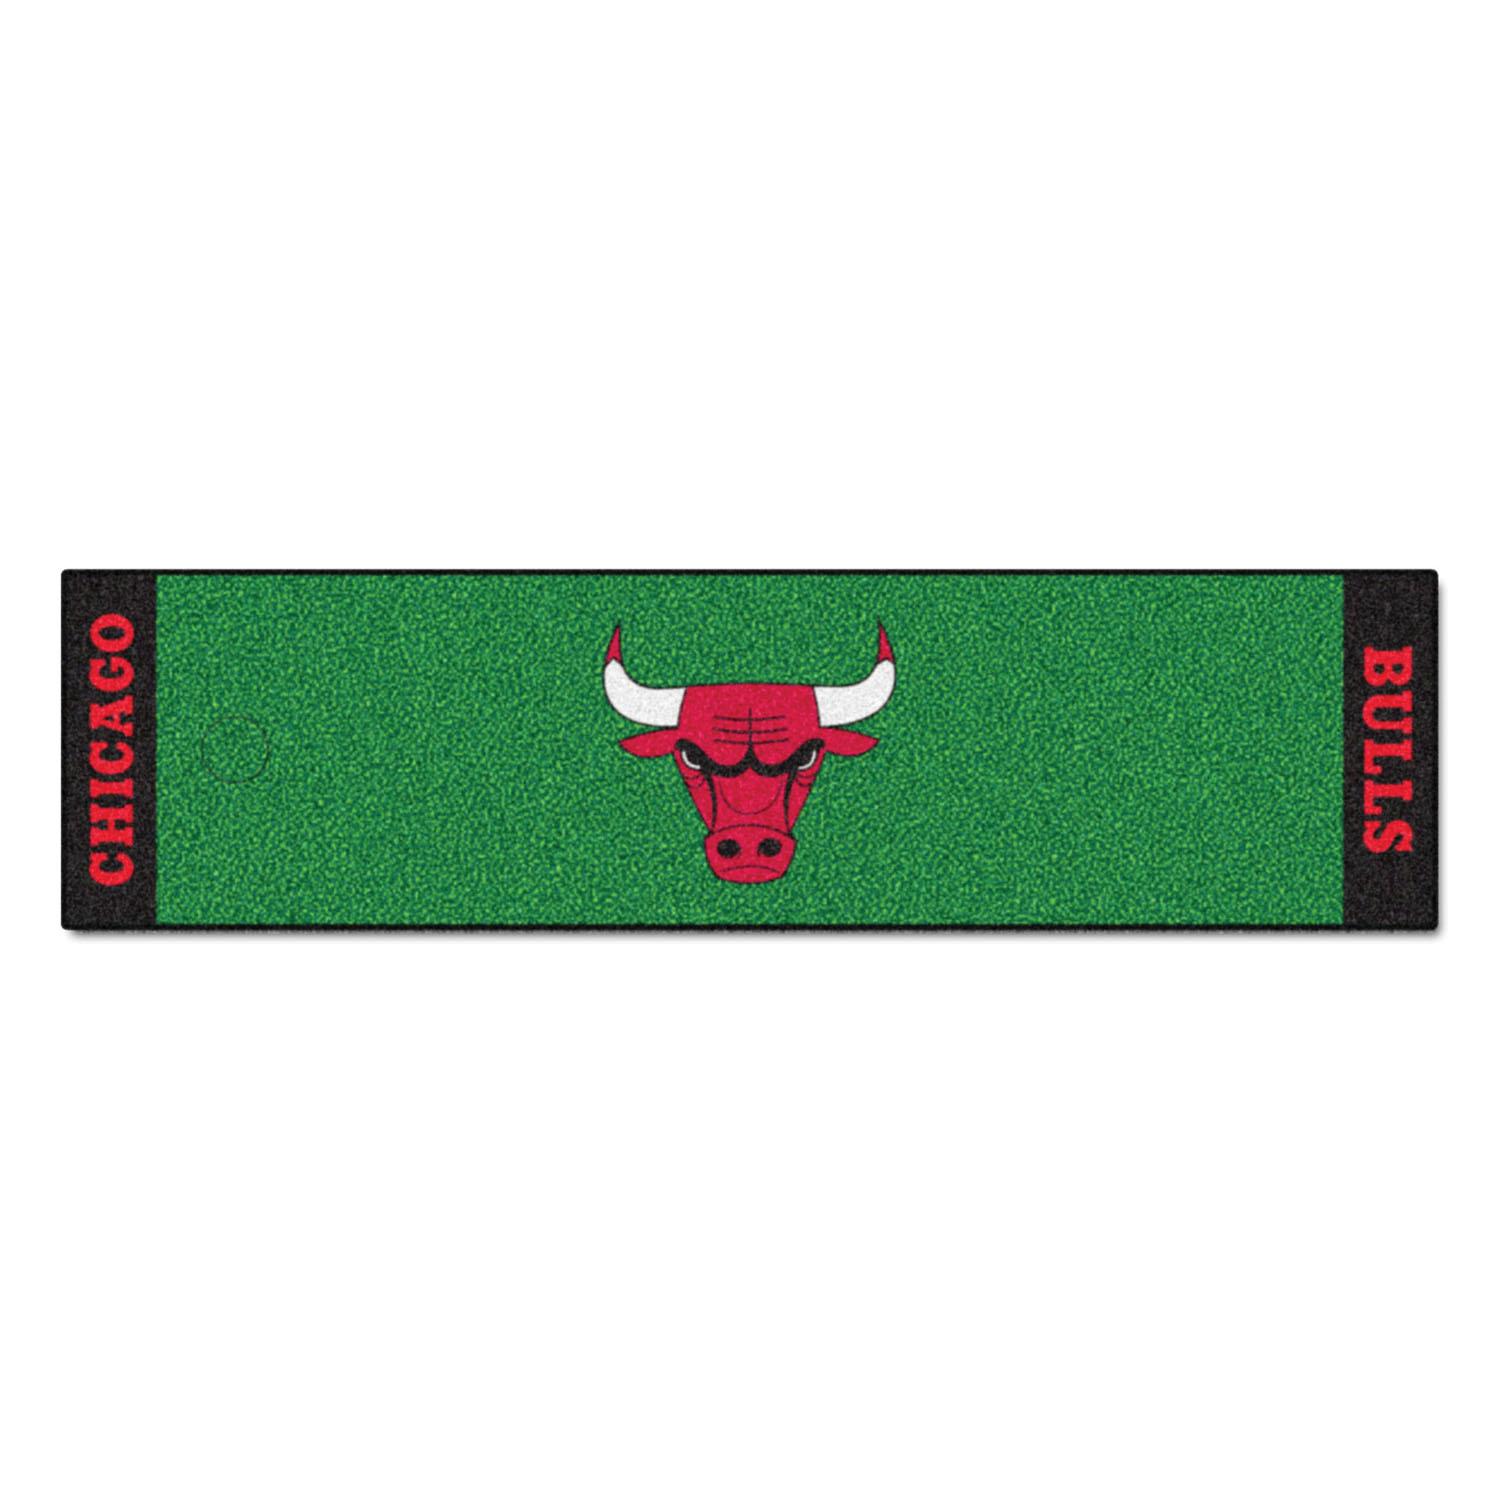 "Fanmats Chicago Bulls Putting Green Runner 18""x72"""